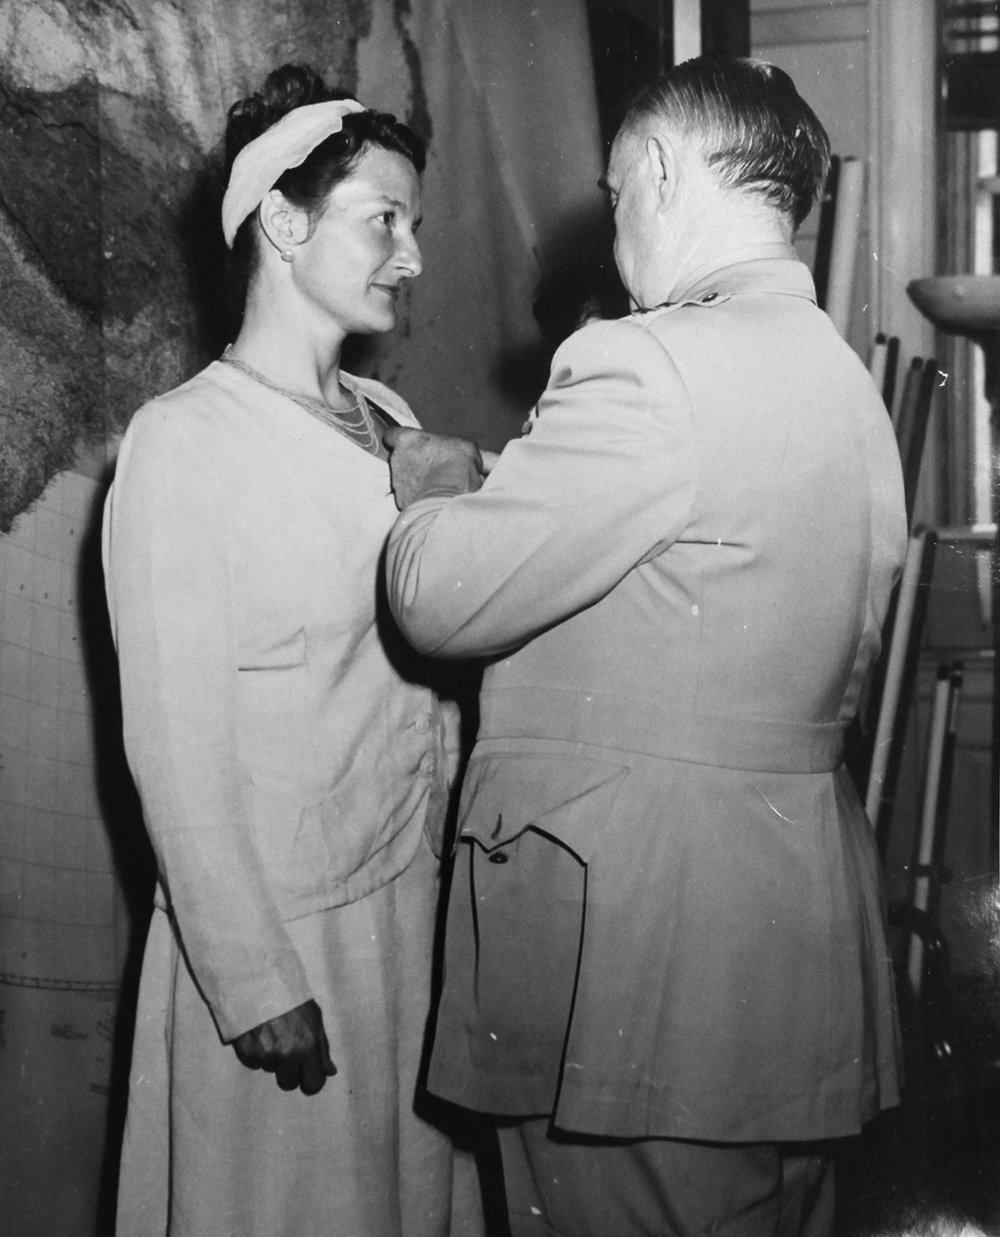 Virginia Hall receiving the Distinguished Service Cross on September 27, 1945. Courtesy of Lorna Catling and John Hall